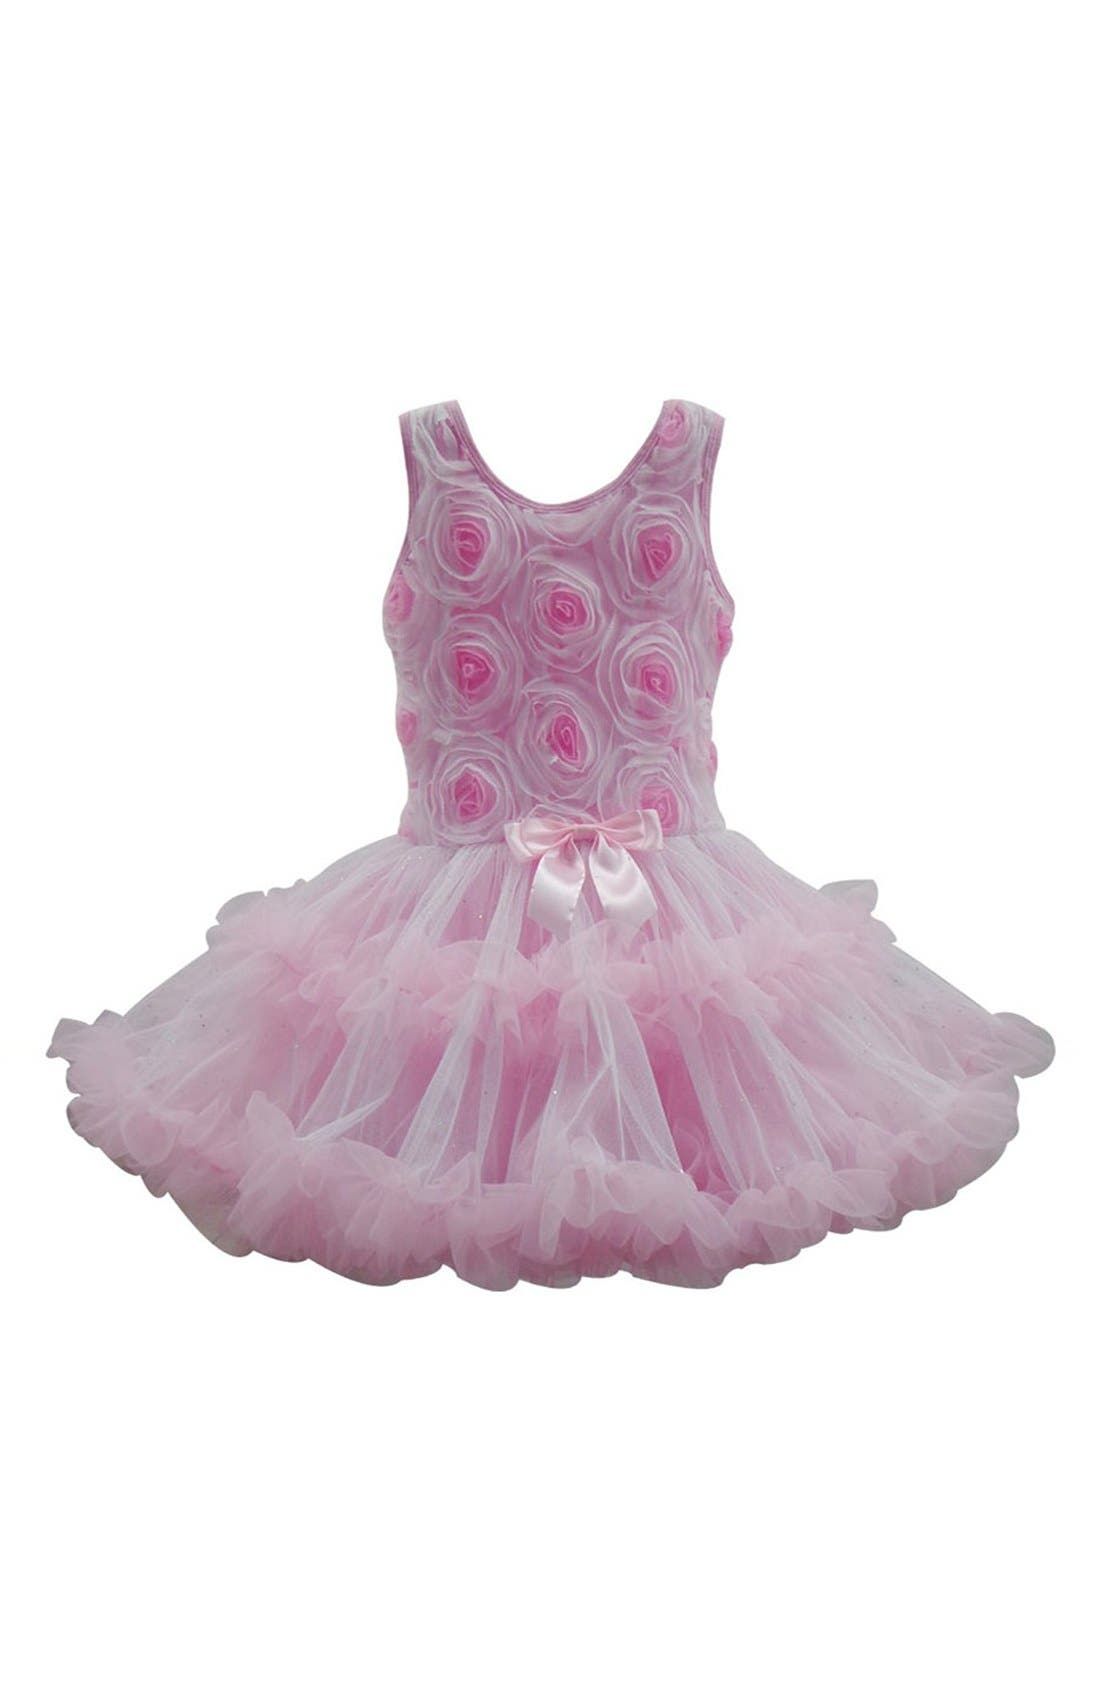 Ribbon Rosette Flower Petidress,                         Main,                         color, Pink